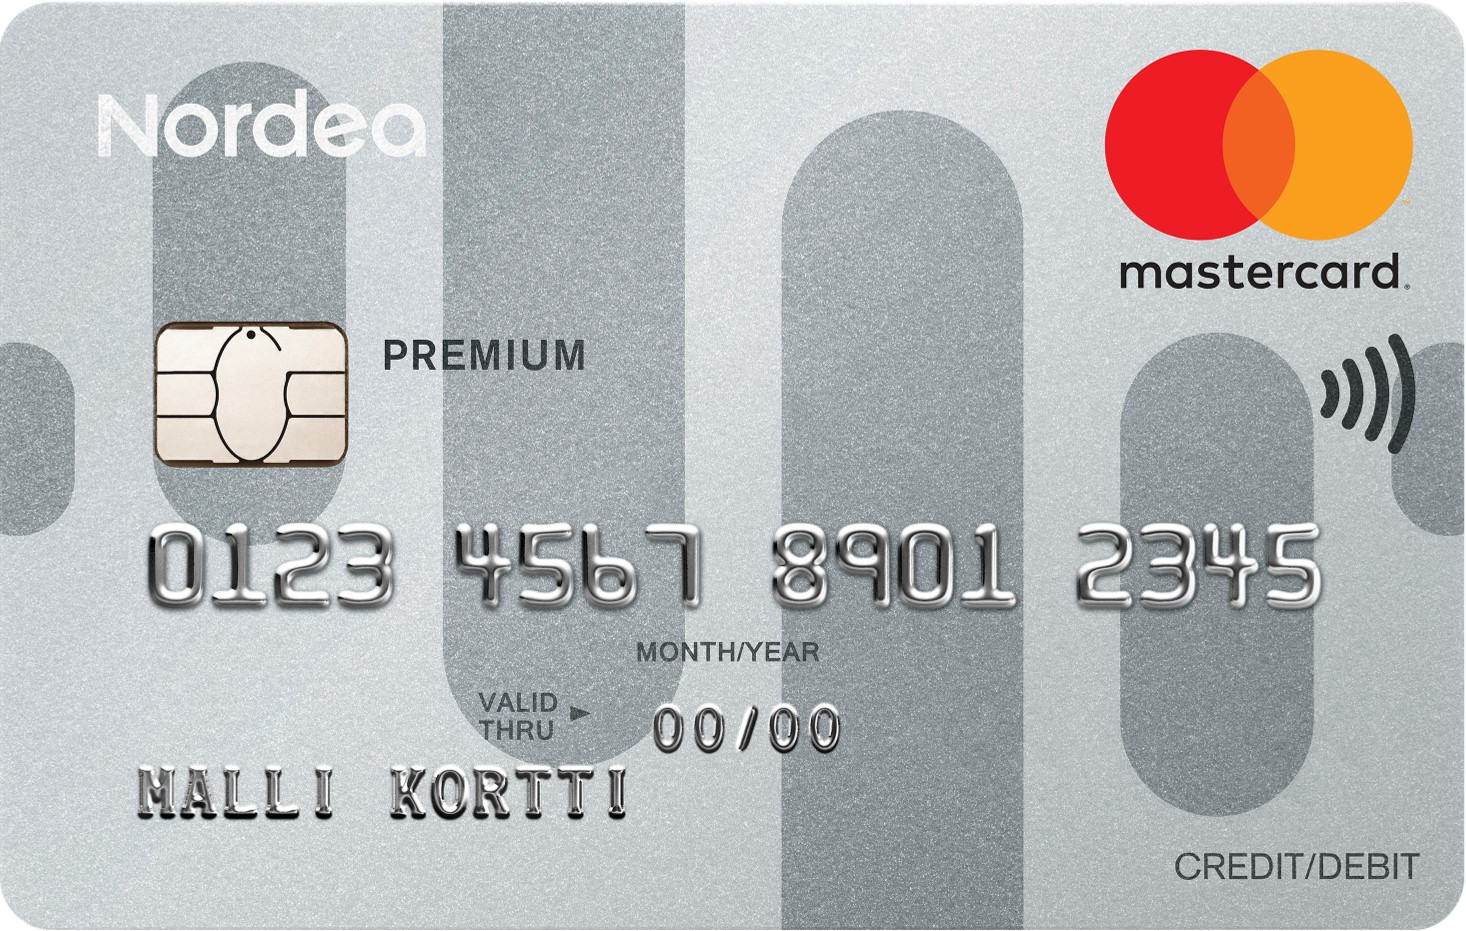 Nordea Credit Card